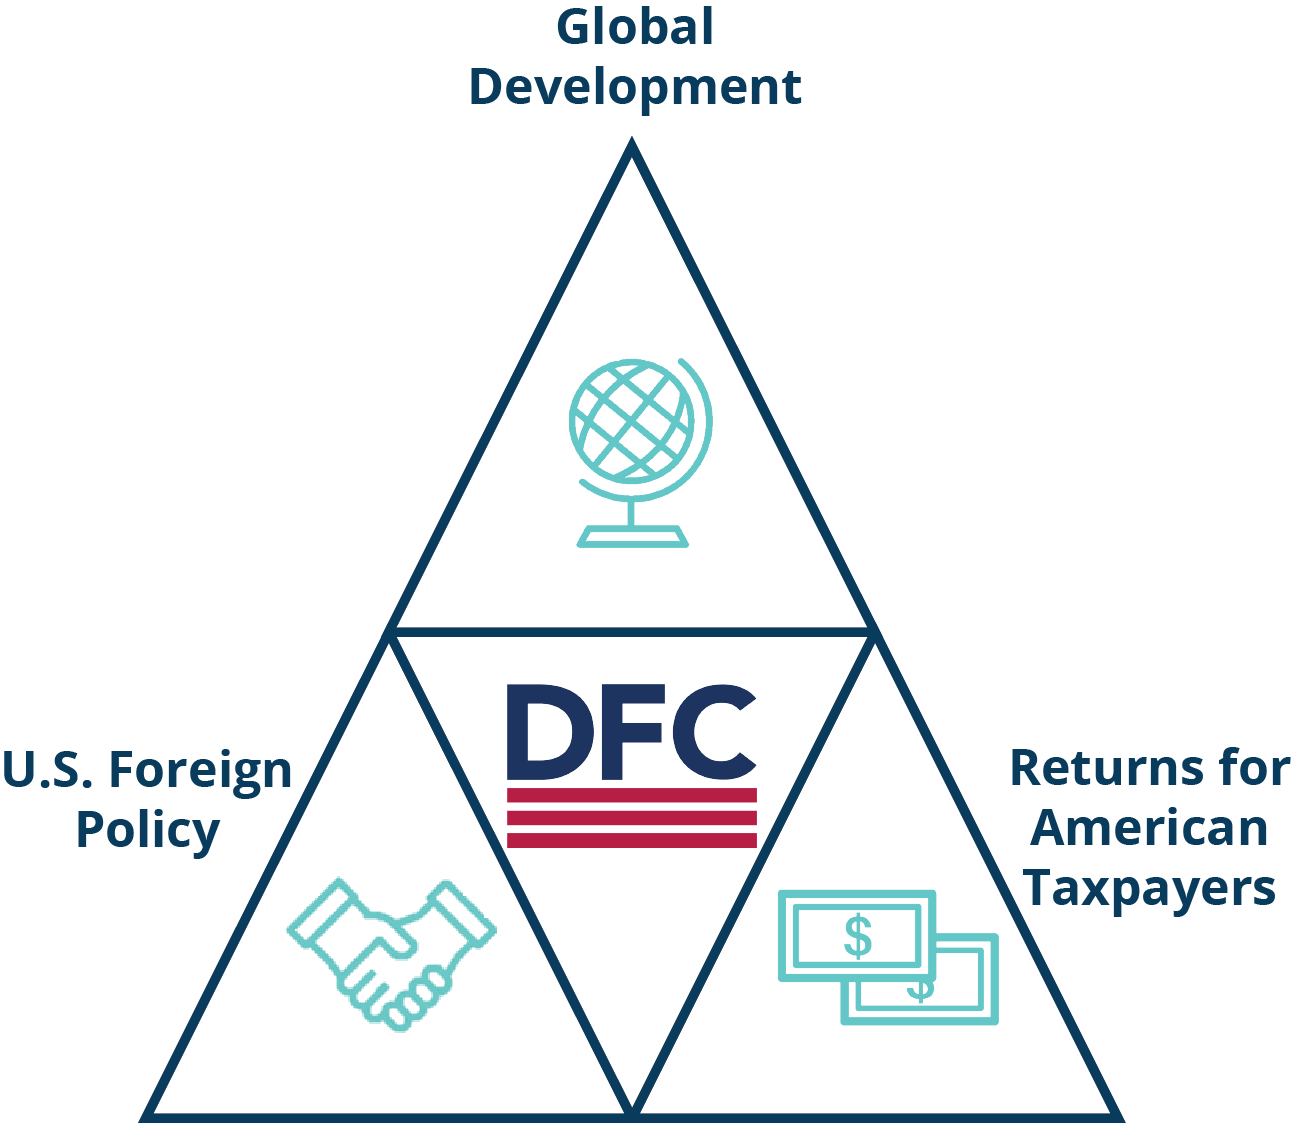 Graphic showing DFC at the center of global development, U.S. foreign policy, and returns for American taxpayers